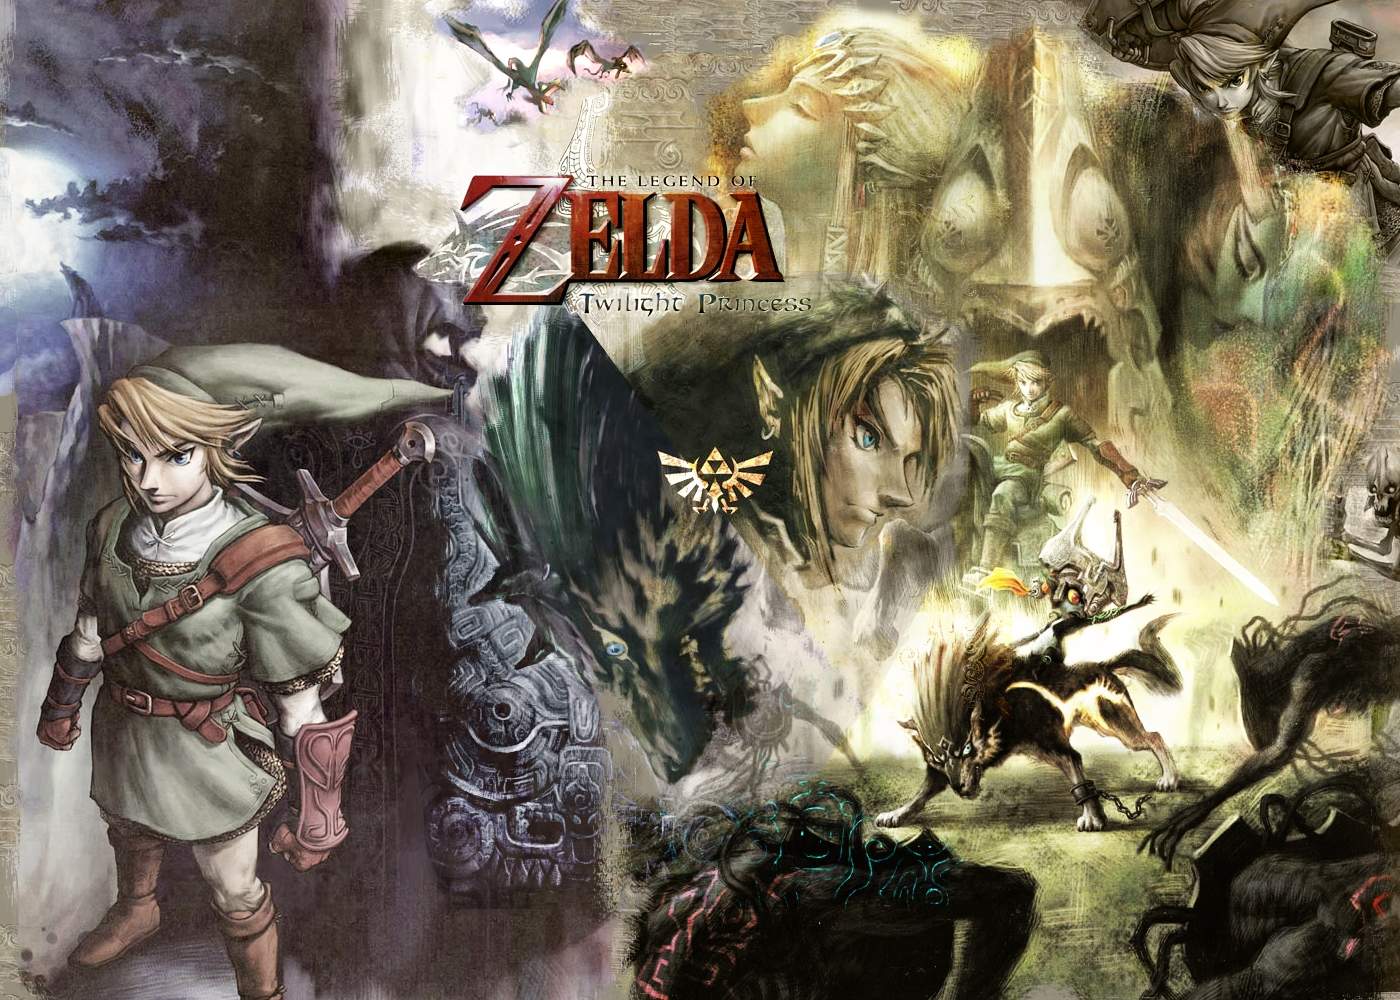 Princess Zelda Twilight Princess Wallpaper 1400x1000